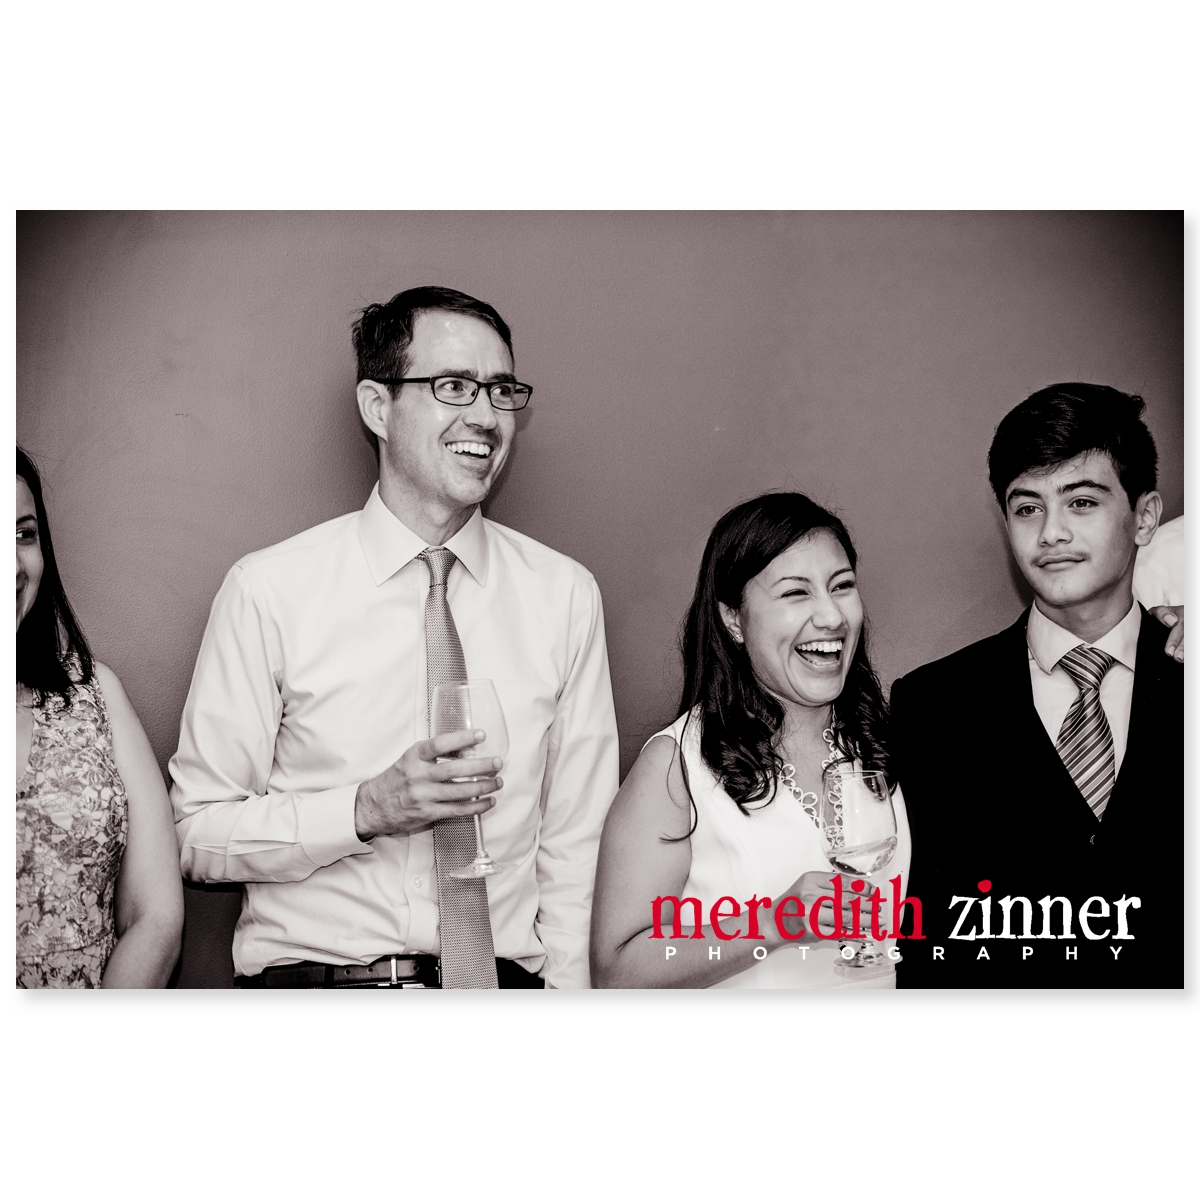 Meredith_Zinner_Photography_StilesCelebration_0300